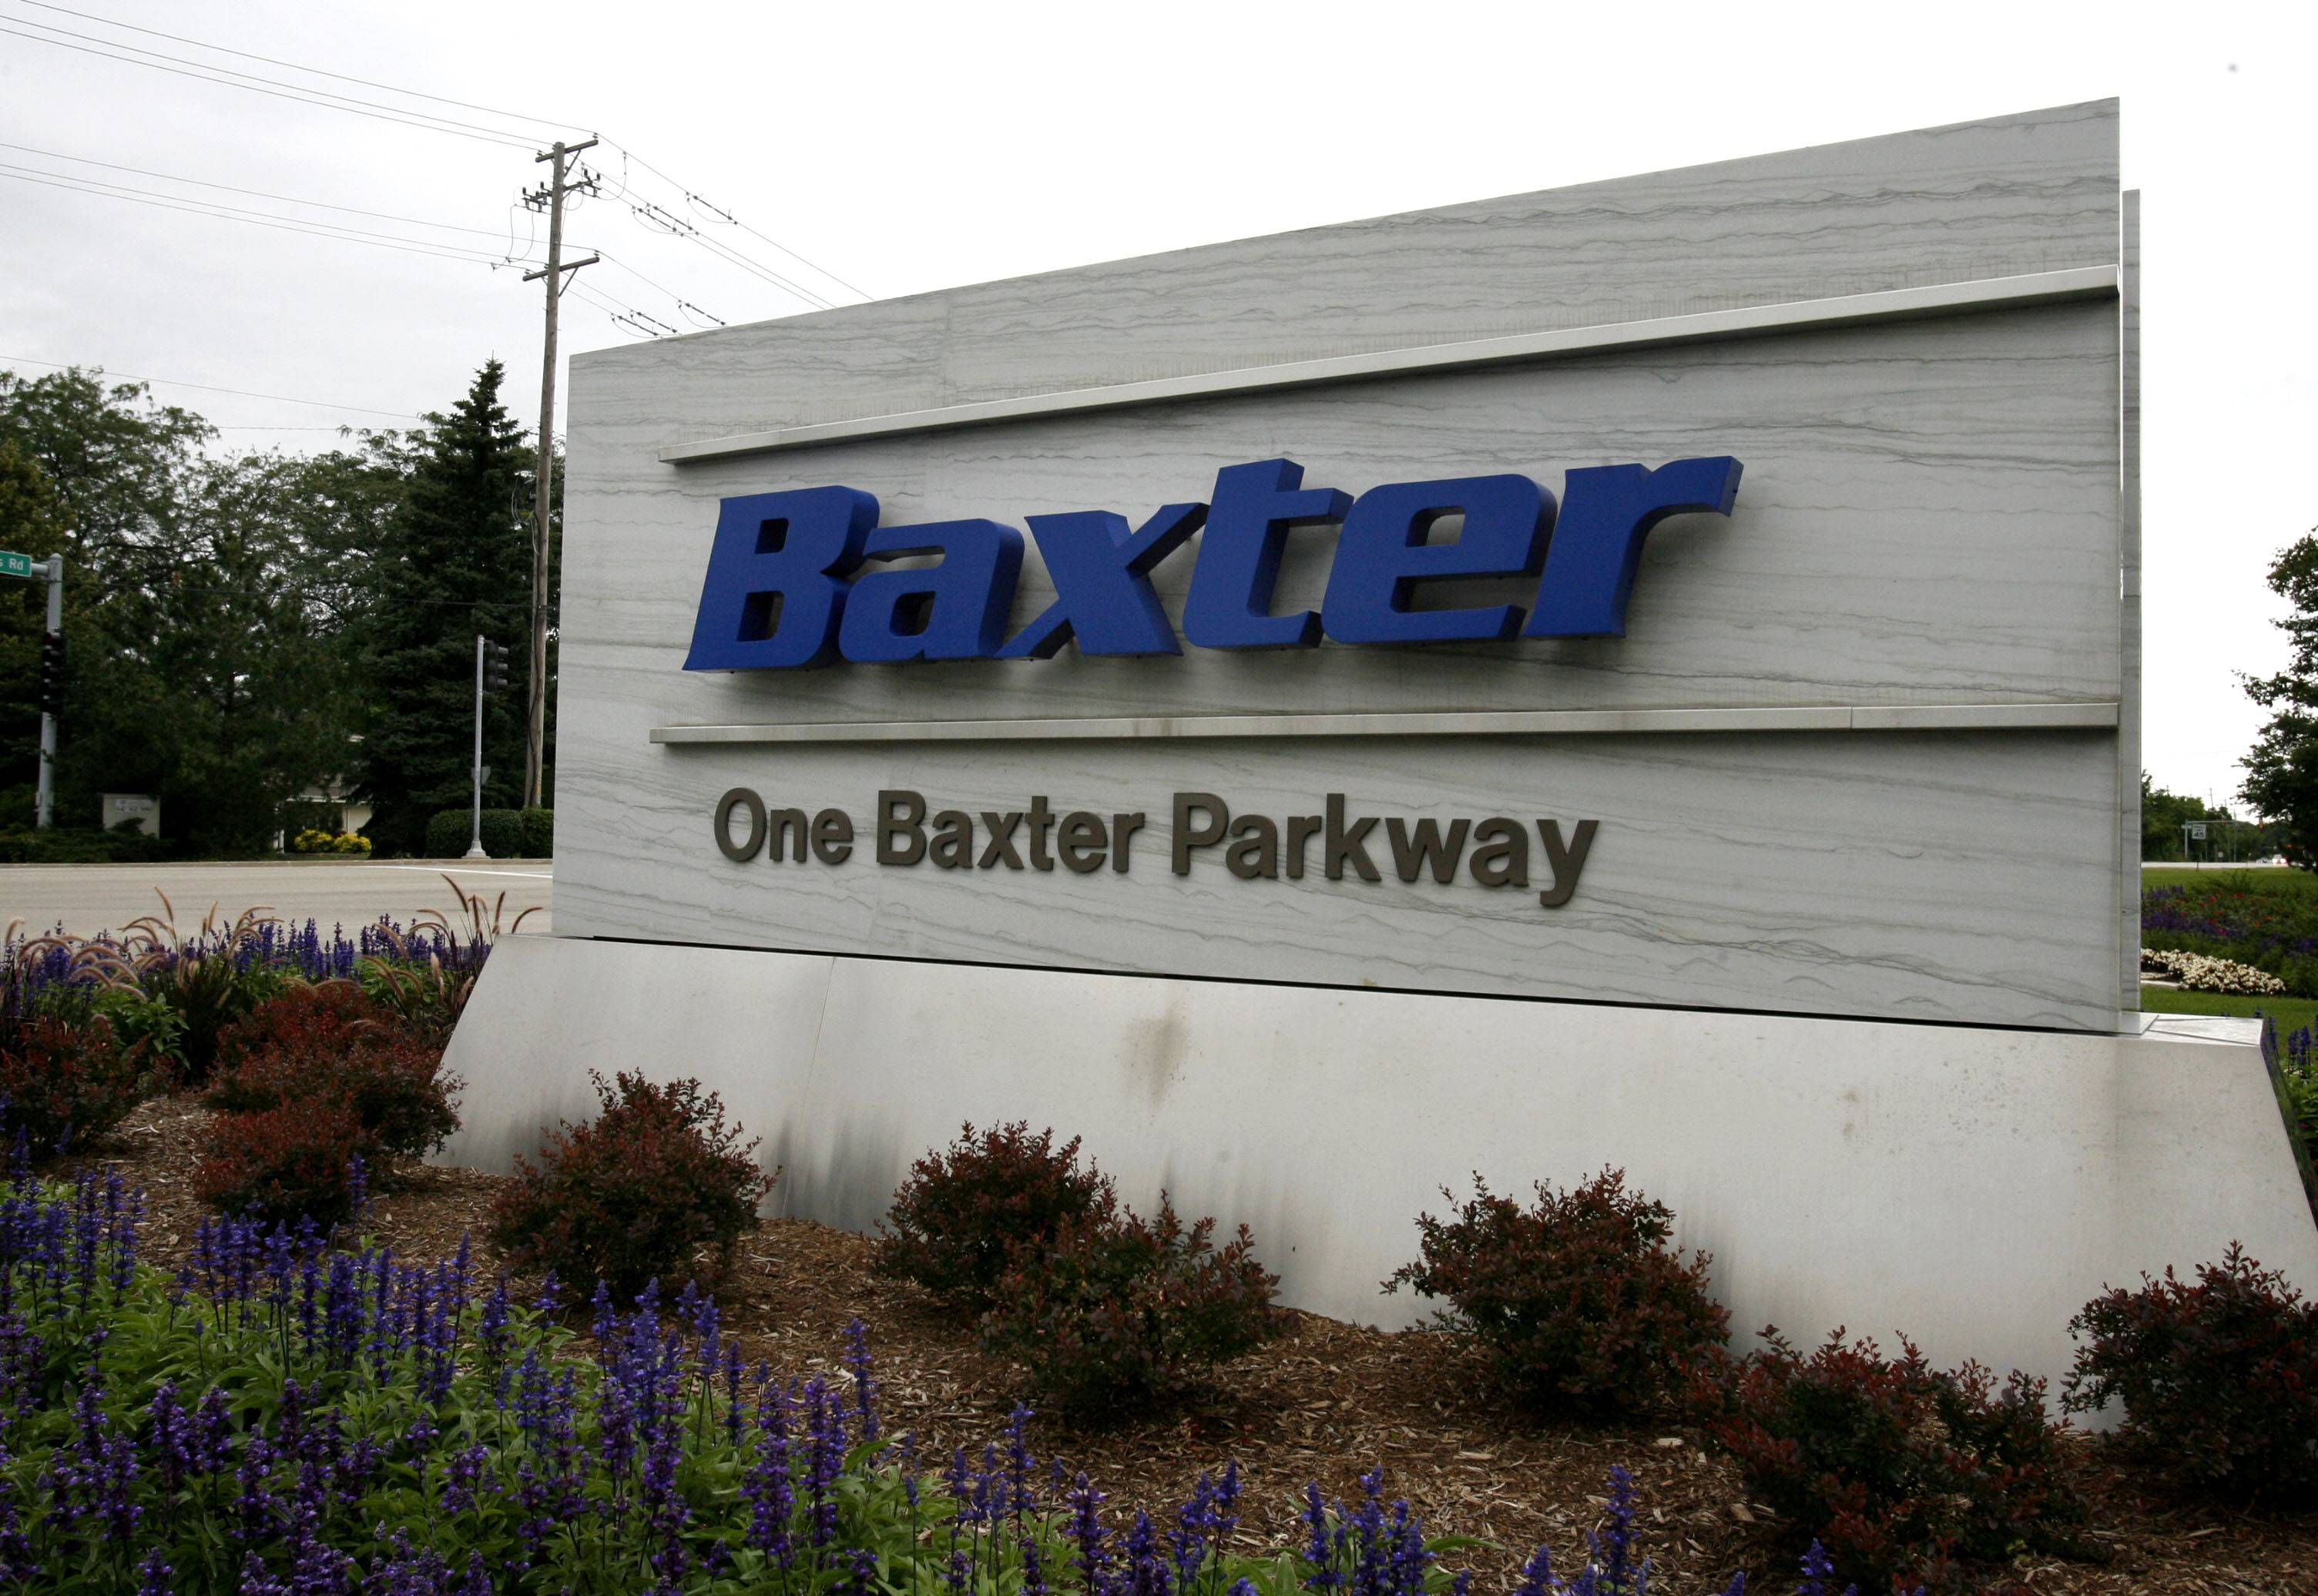 Baxter, headquartered in Deerfield, said it will acquire two hemostat and sealant products from Mallinckrodt.